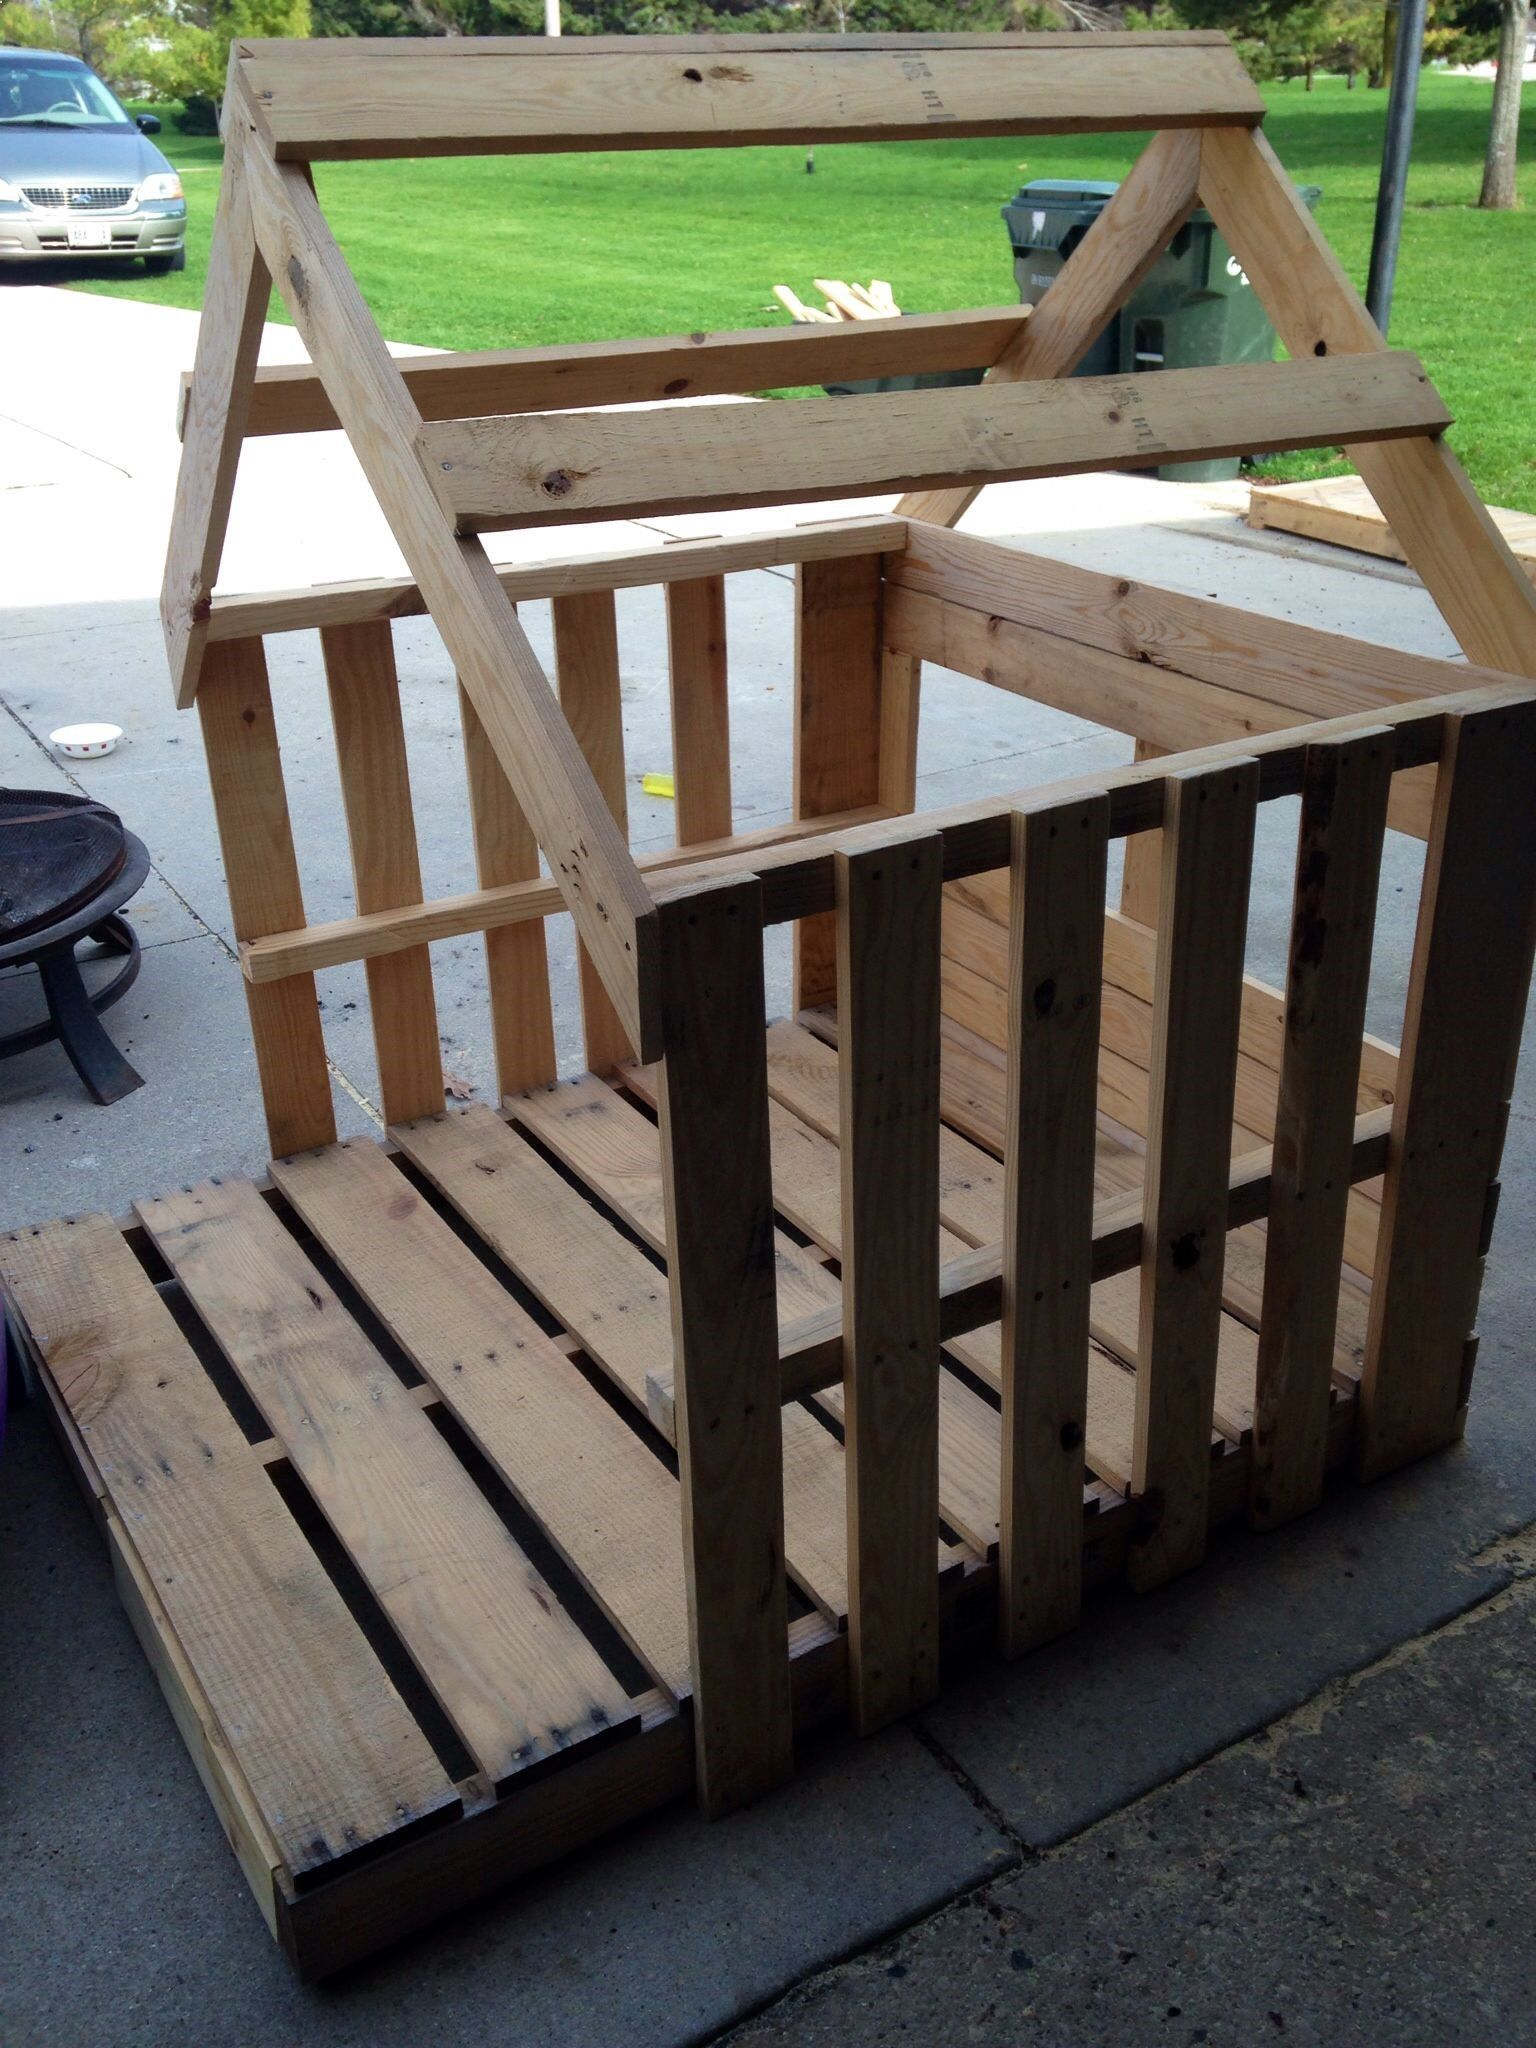 Chicken Coop Framed out playhouse from pallets Building a chicken coop does not have to